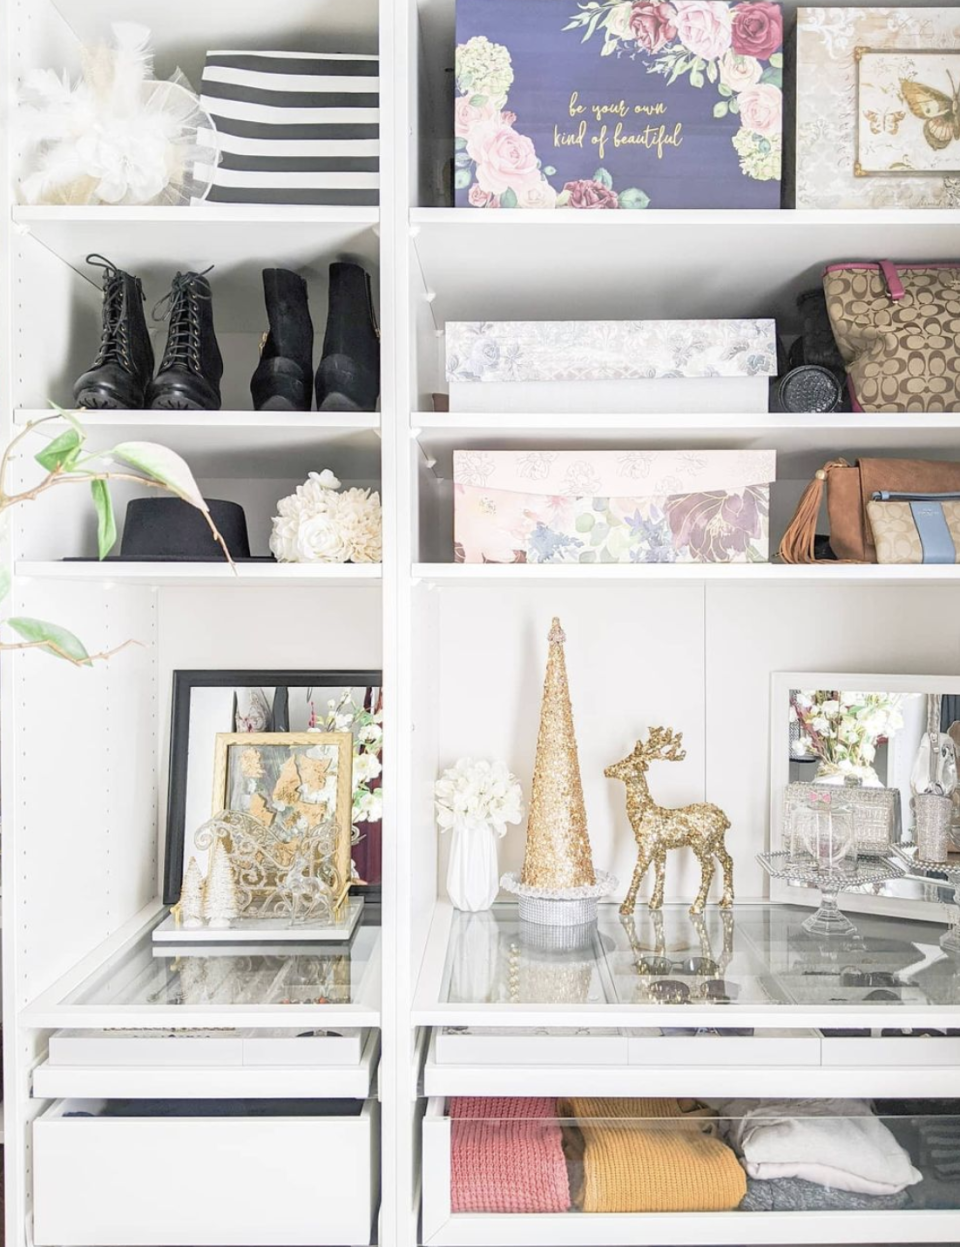 "<p>Clear glass or acrylic shelving and drawer fronts make it easier to identify exactly what's in each storage space. It's a particularly good option for accessories like jewelry, since you can quickly pick something that matches your outfit of the day. </p><p>See more at <a href=""https://www.instagram.com/p/CIWBd63HF9d/"" rel=""nofollow noopener"" target=""_blank"" data-ylk=""slk:Simply Patrice Designs"" class=""link rapid-noclick-resp"">Simply Patrice Designs</a>. </p>"